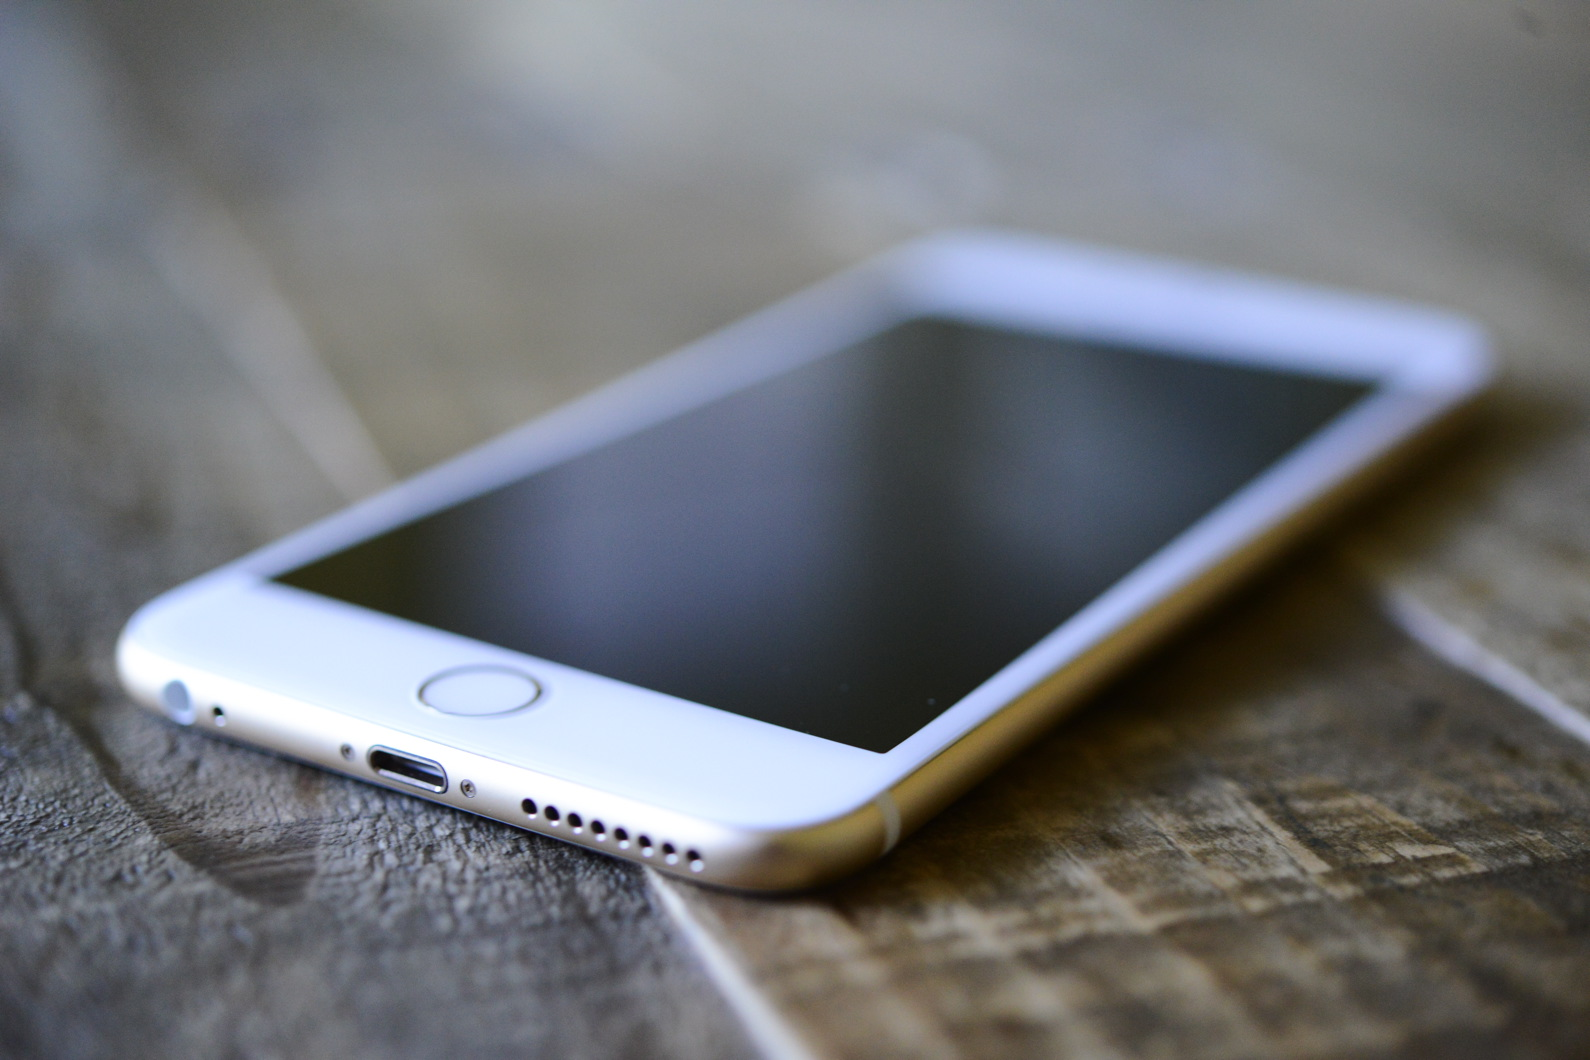 big_iphone6plus-hands-on_2697.jpg